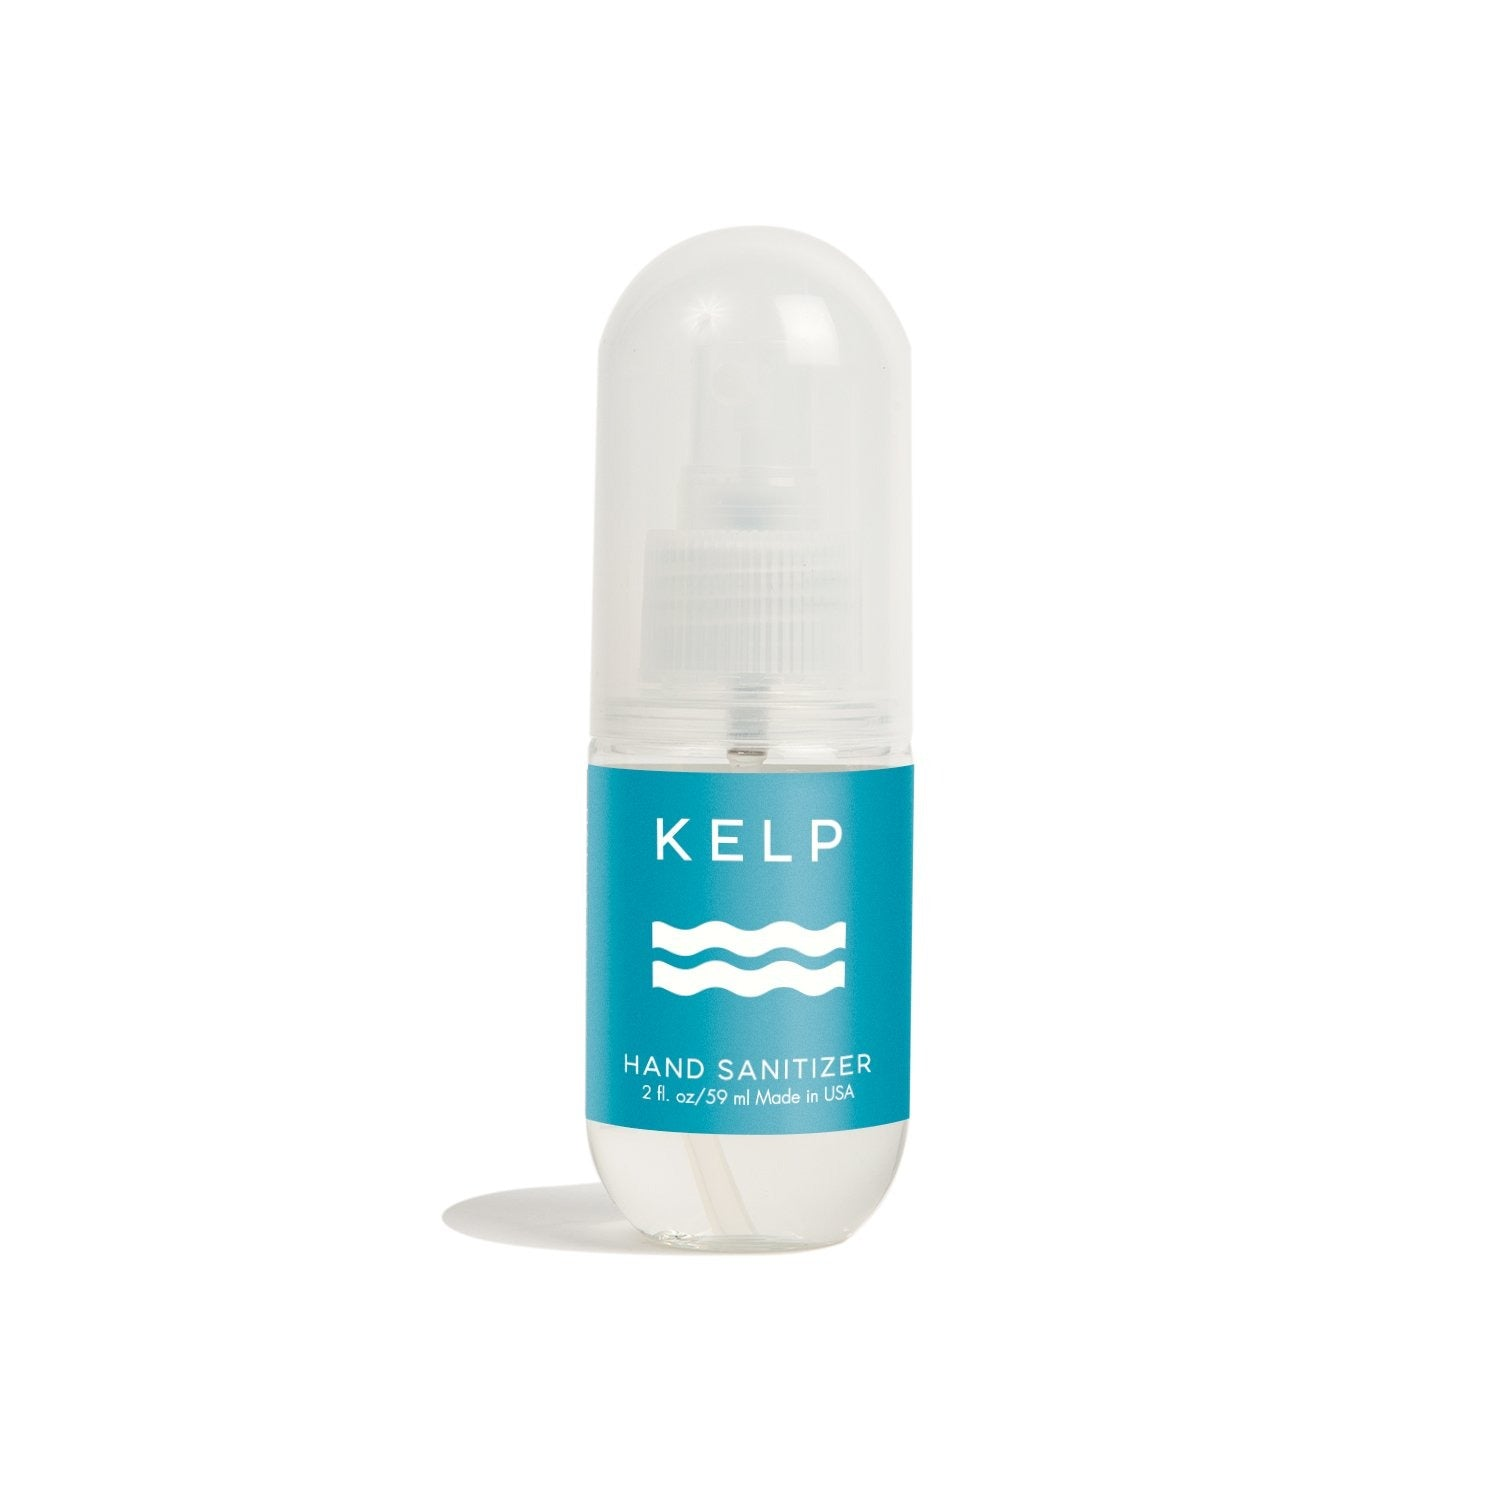 Kelp Hand Sanitizer